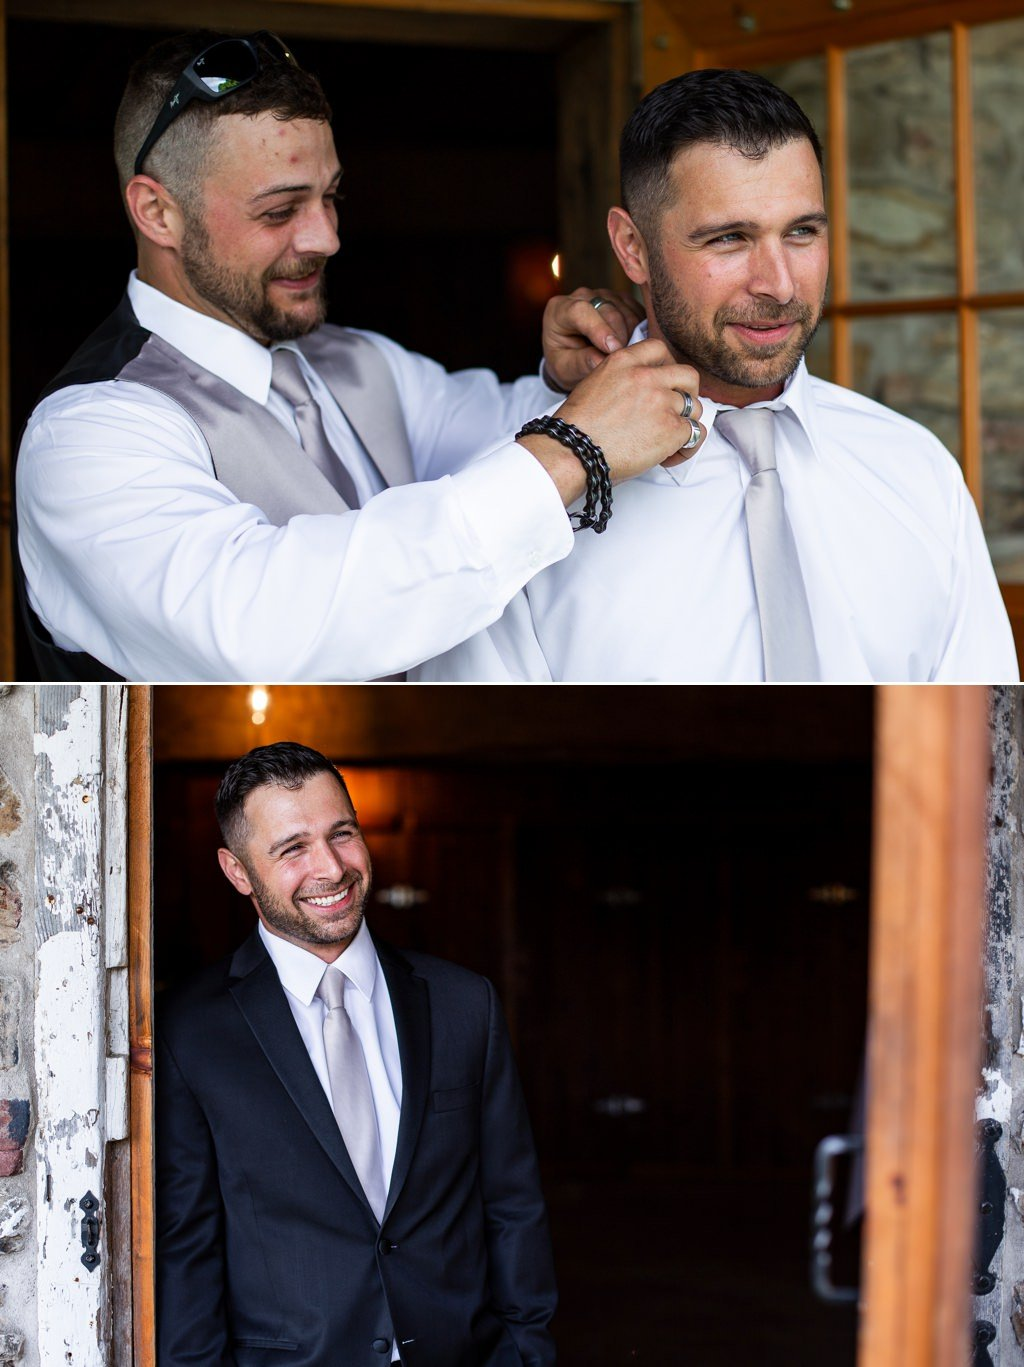 The groom getting ready for his wedding at Wind in the Willows in Grantville, PA